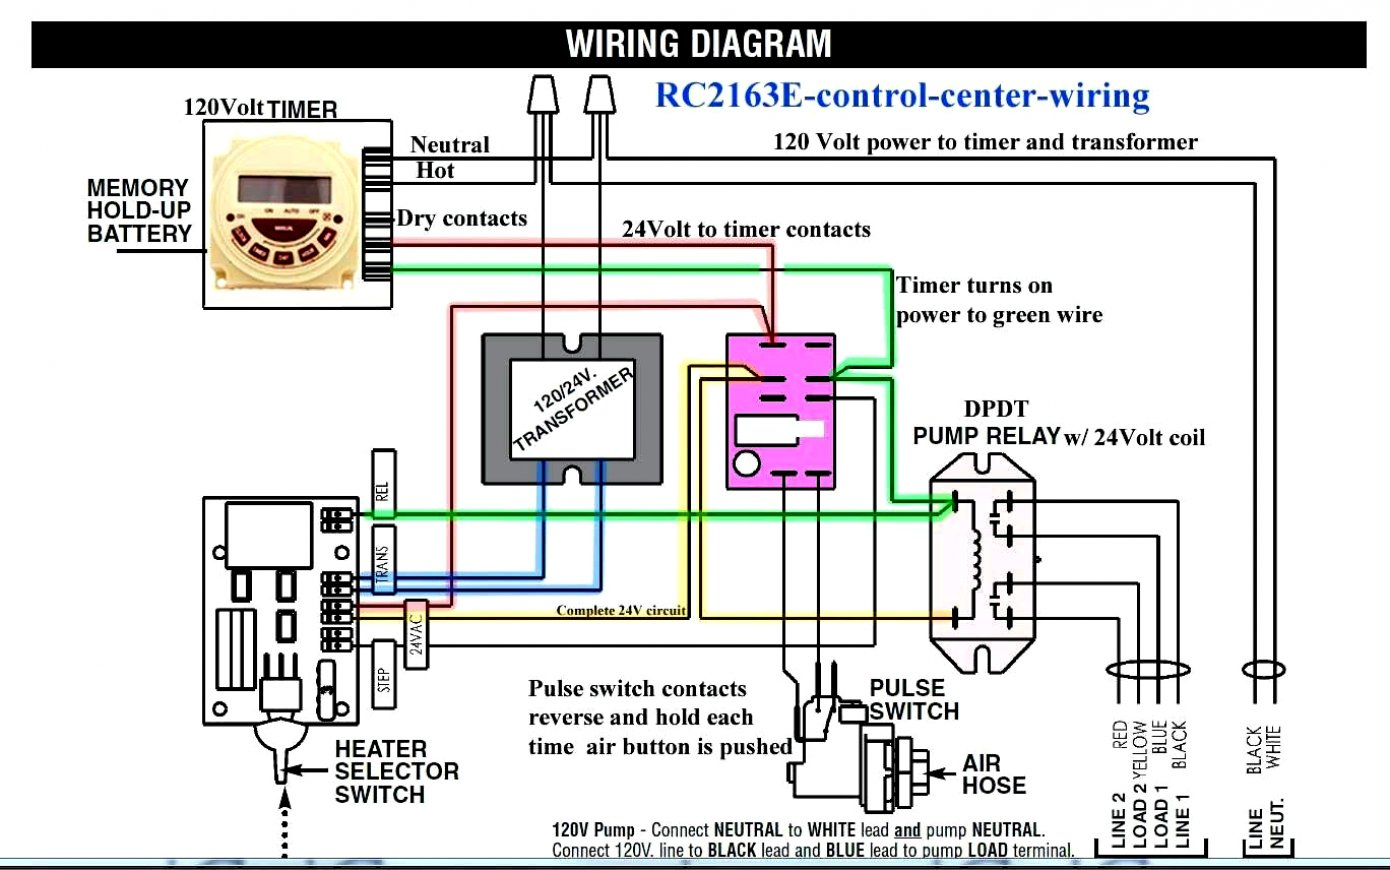 Wiring Diagram For 120V Pool Lights - Wiring Diagram Essig - Pool Light Transformer Wiring Diagram